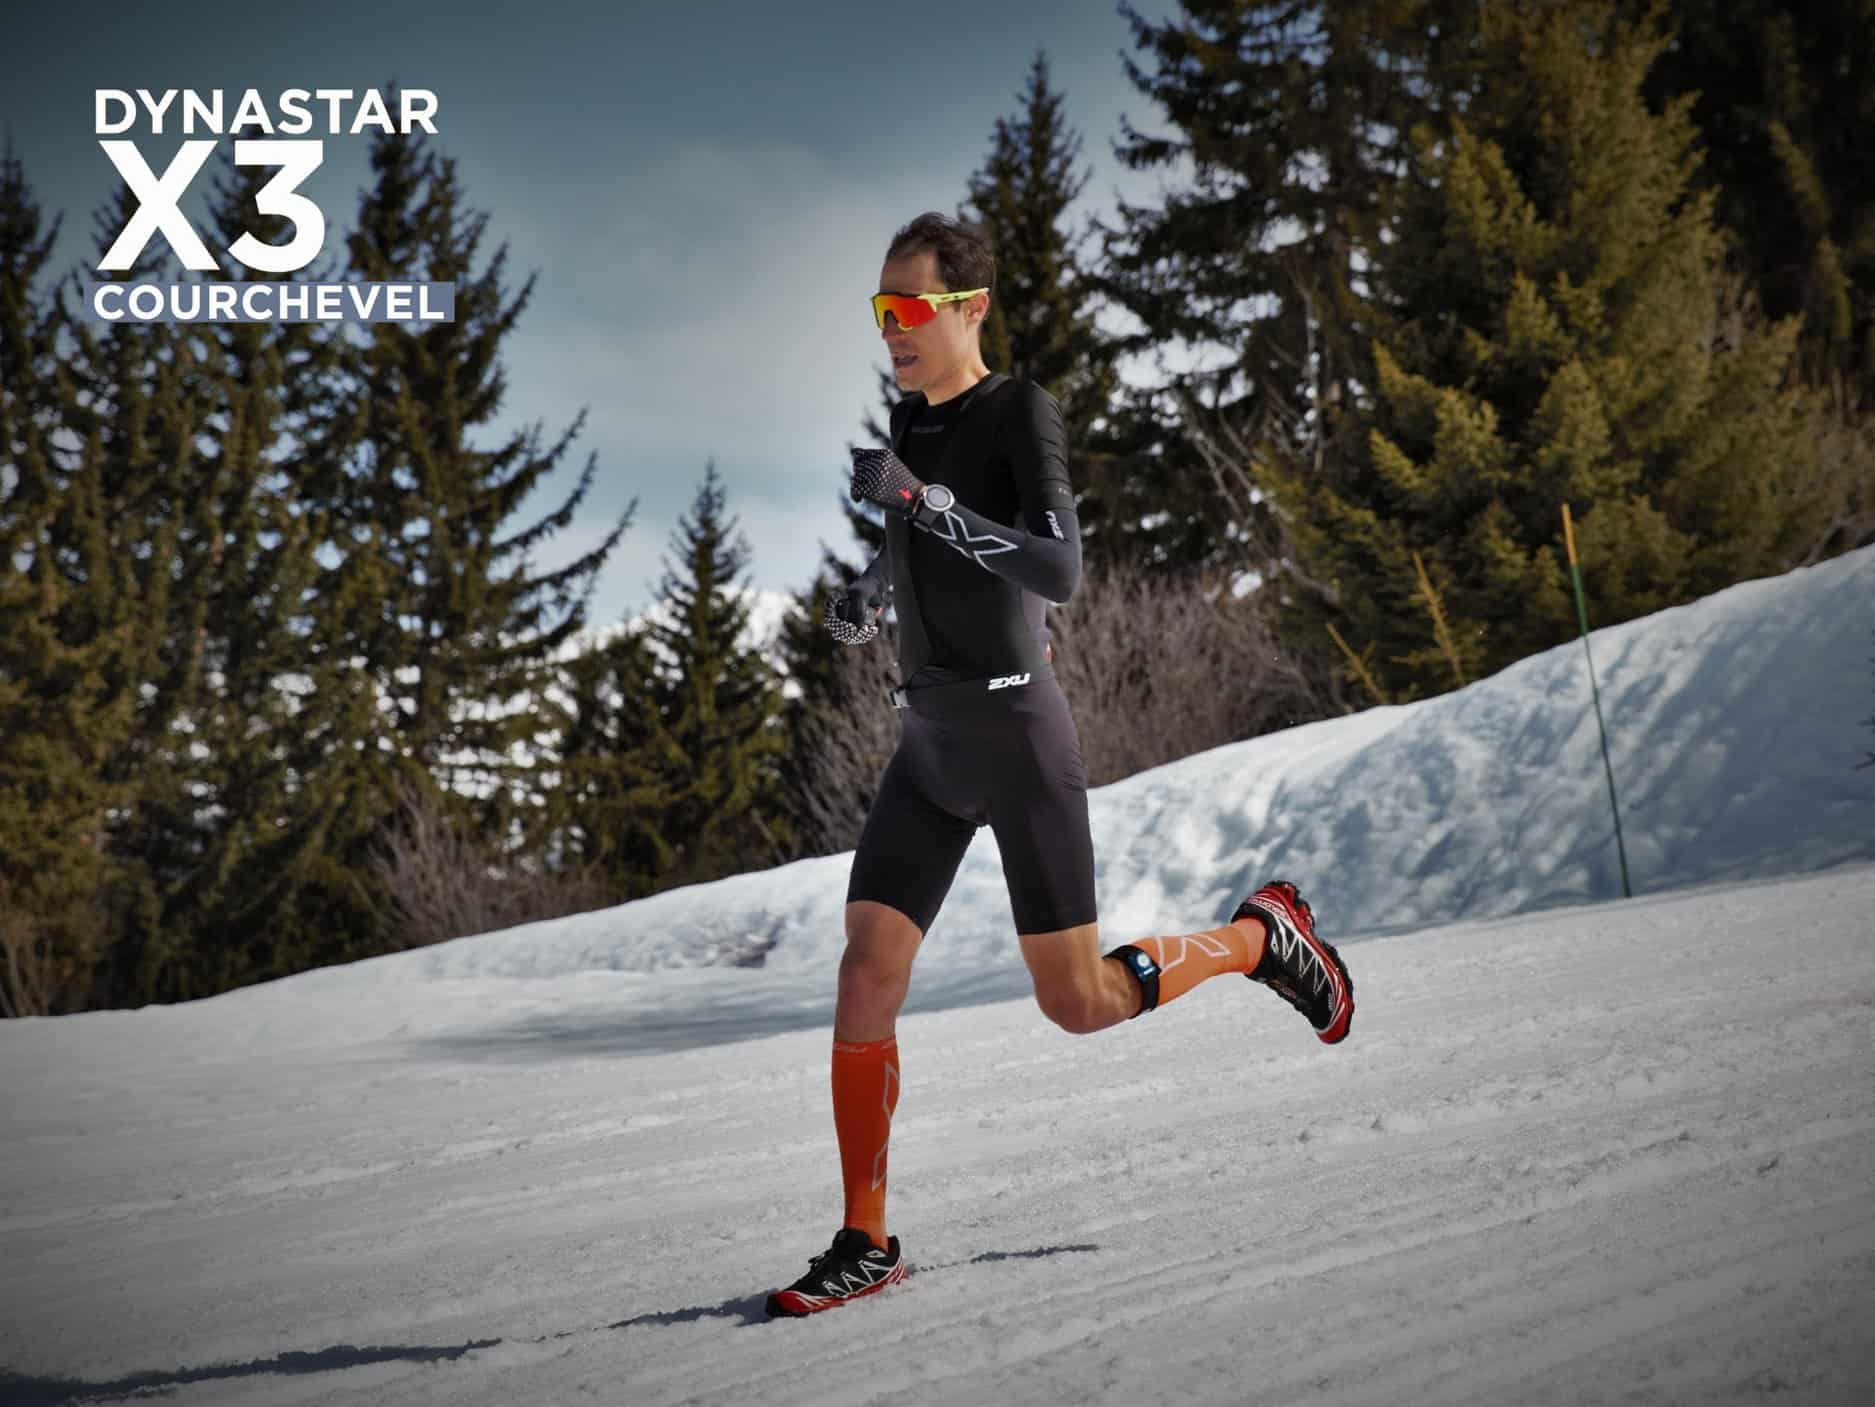 nicolas raybaud en trail au triathlon dynastar X3 courchevel